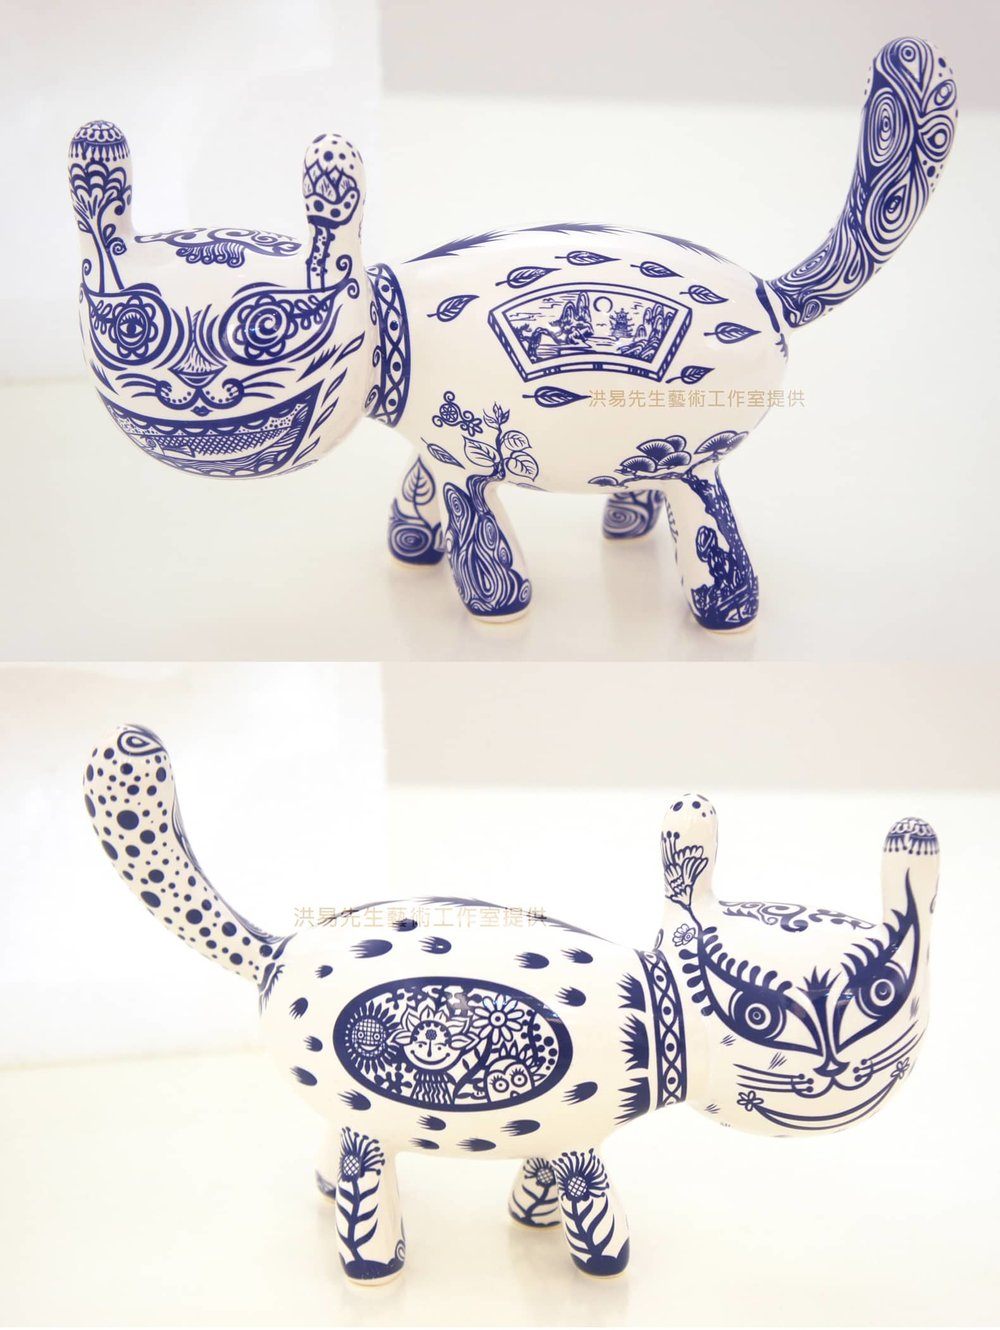 洪易 HUNG Yi〈小青花貓-日本雕刻之森特別版 Blue and White Cat-Special Edition for the Exhibition at Hakone Open-Air Museum, Japan〉